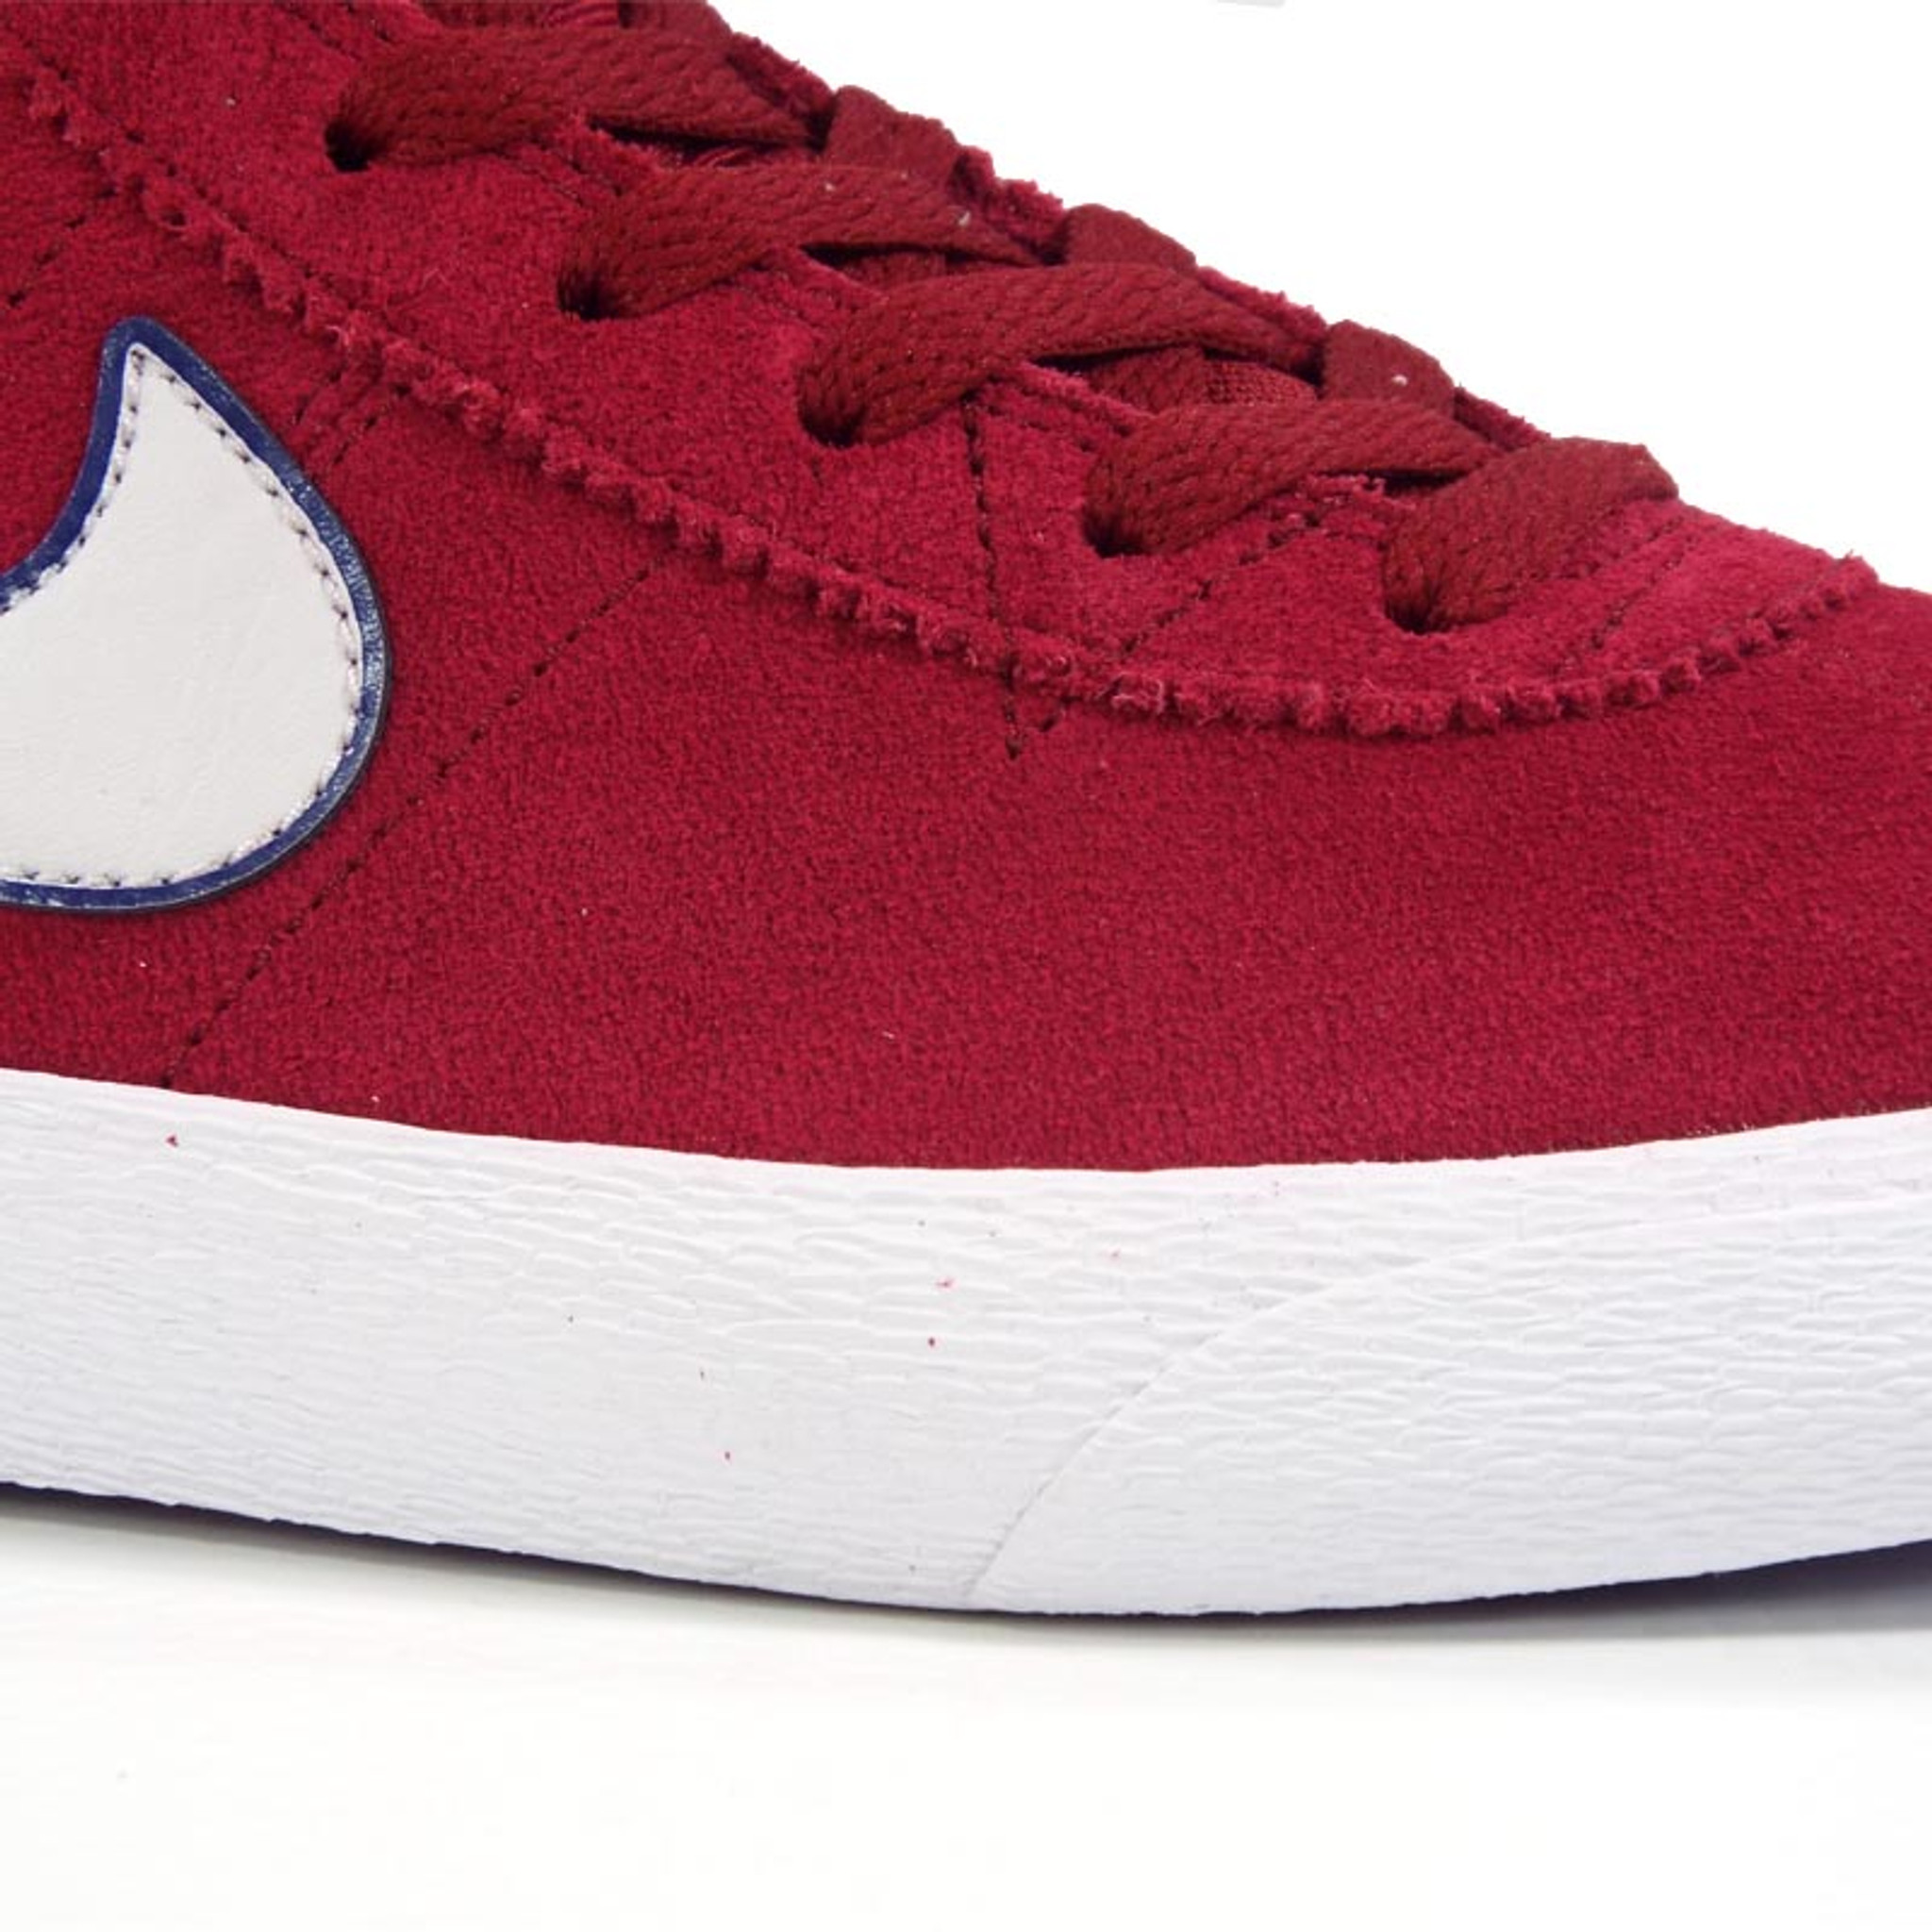 new product f9f28 dad2a Nike SB Women's Bruin HI Shoes - Red Crush/Vast Grey-White